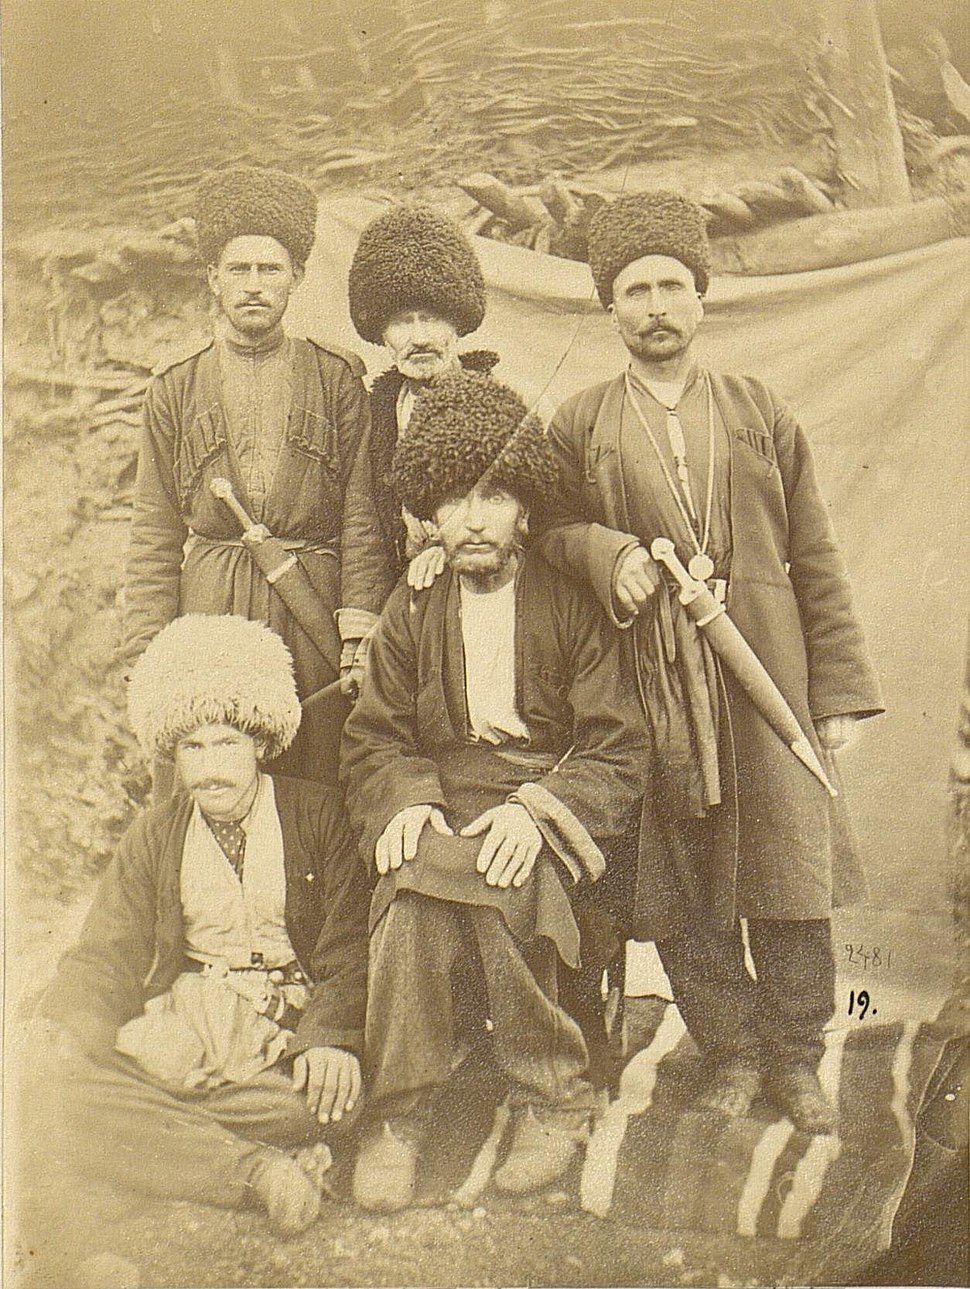 Group of men from Laza